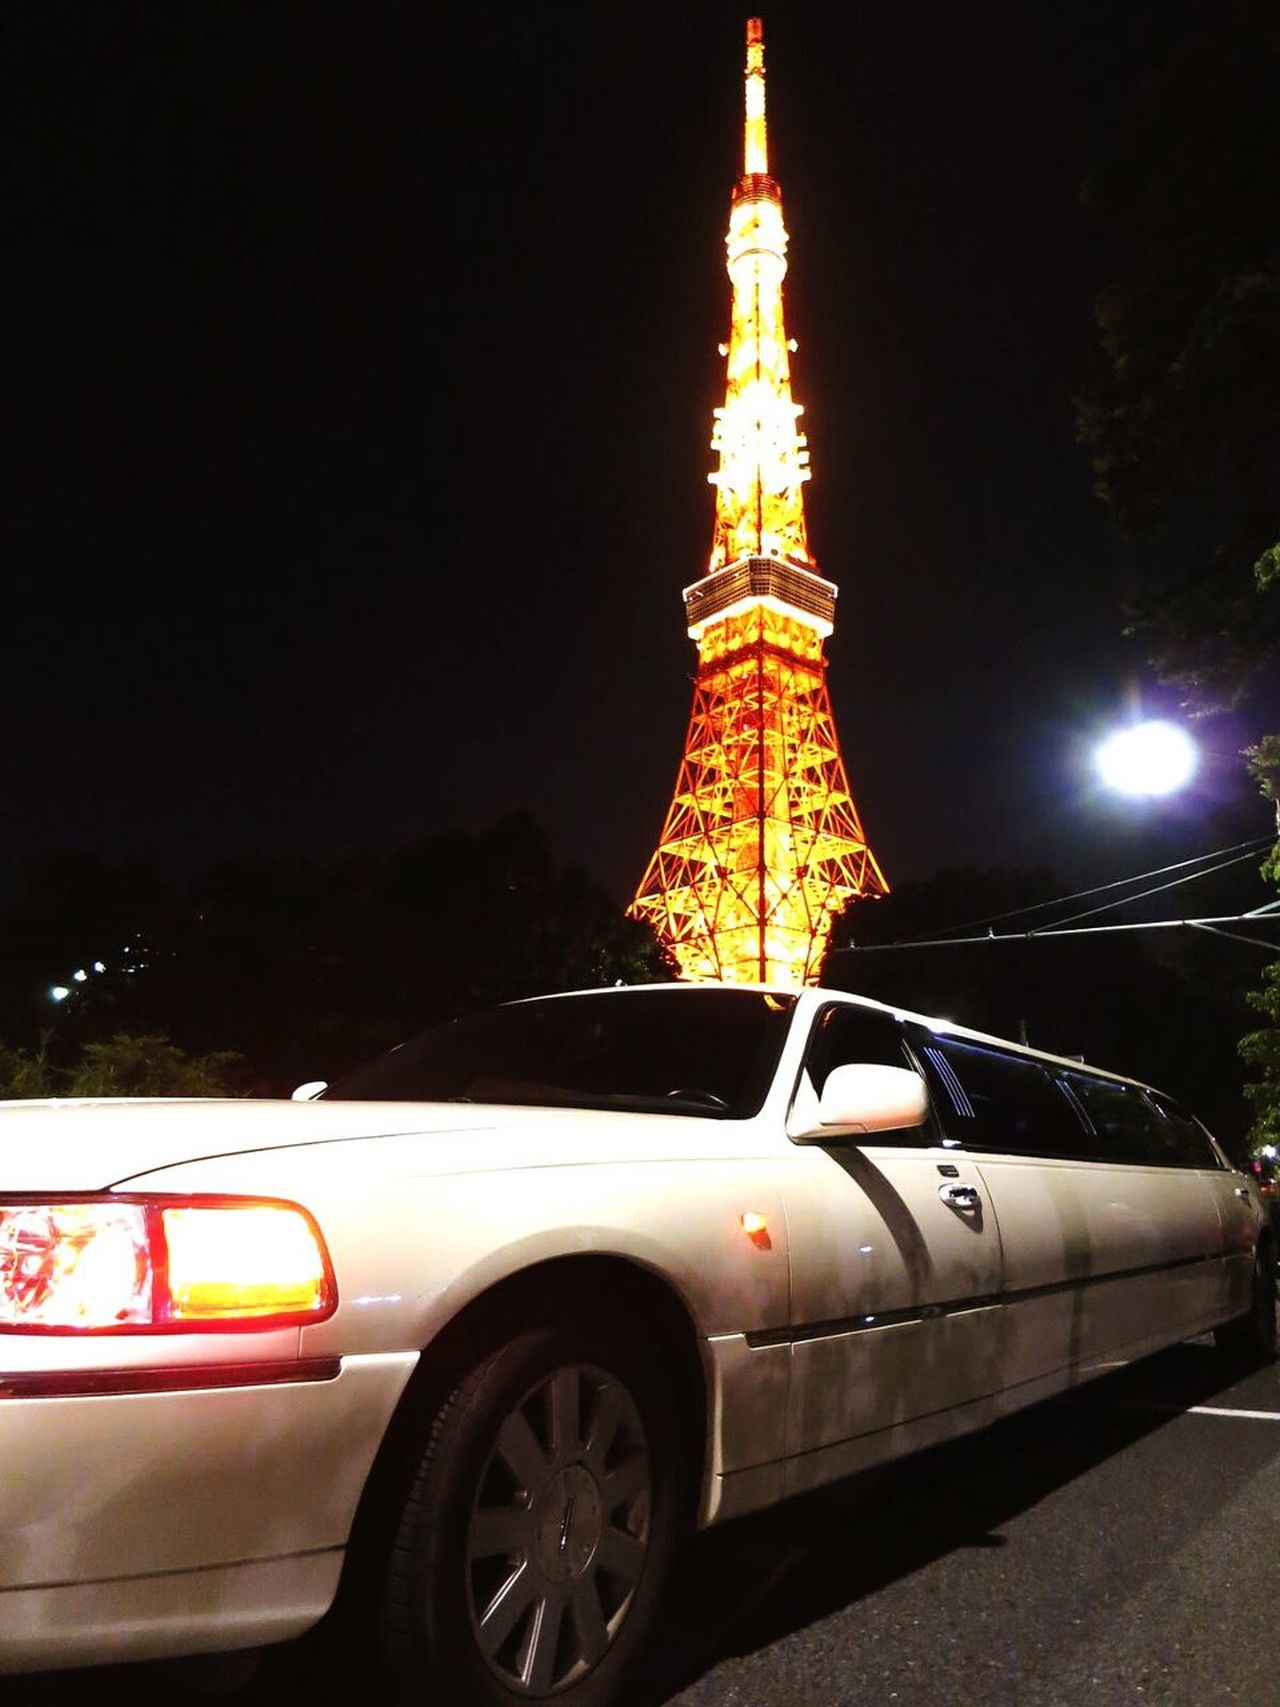 東京タワー 東京 日本 Japan リムジン Car Night Transportation Land Vehicle Mode Of Transport Illuminated No People Outdoors Architecture